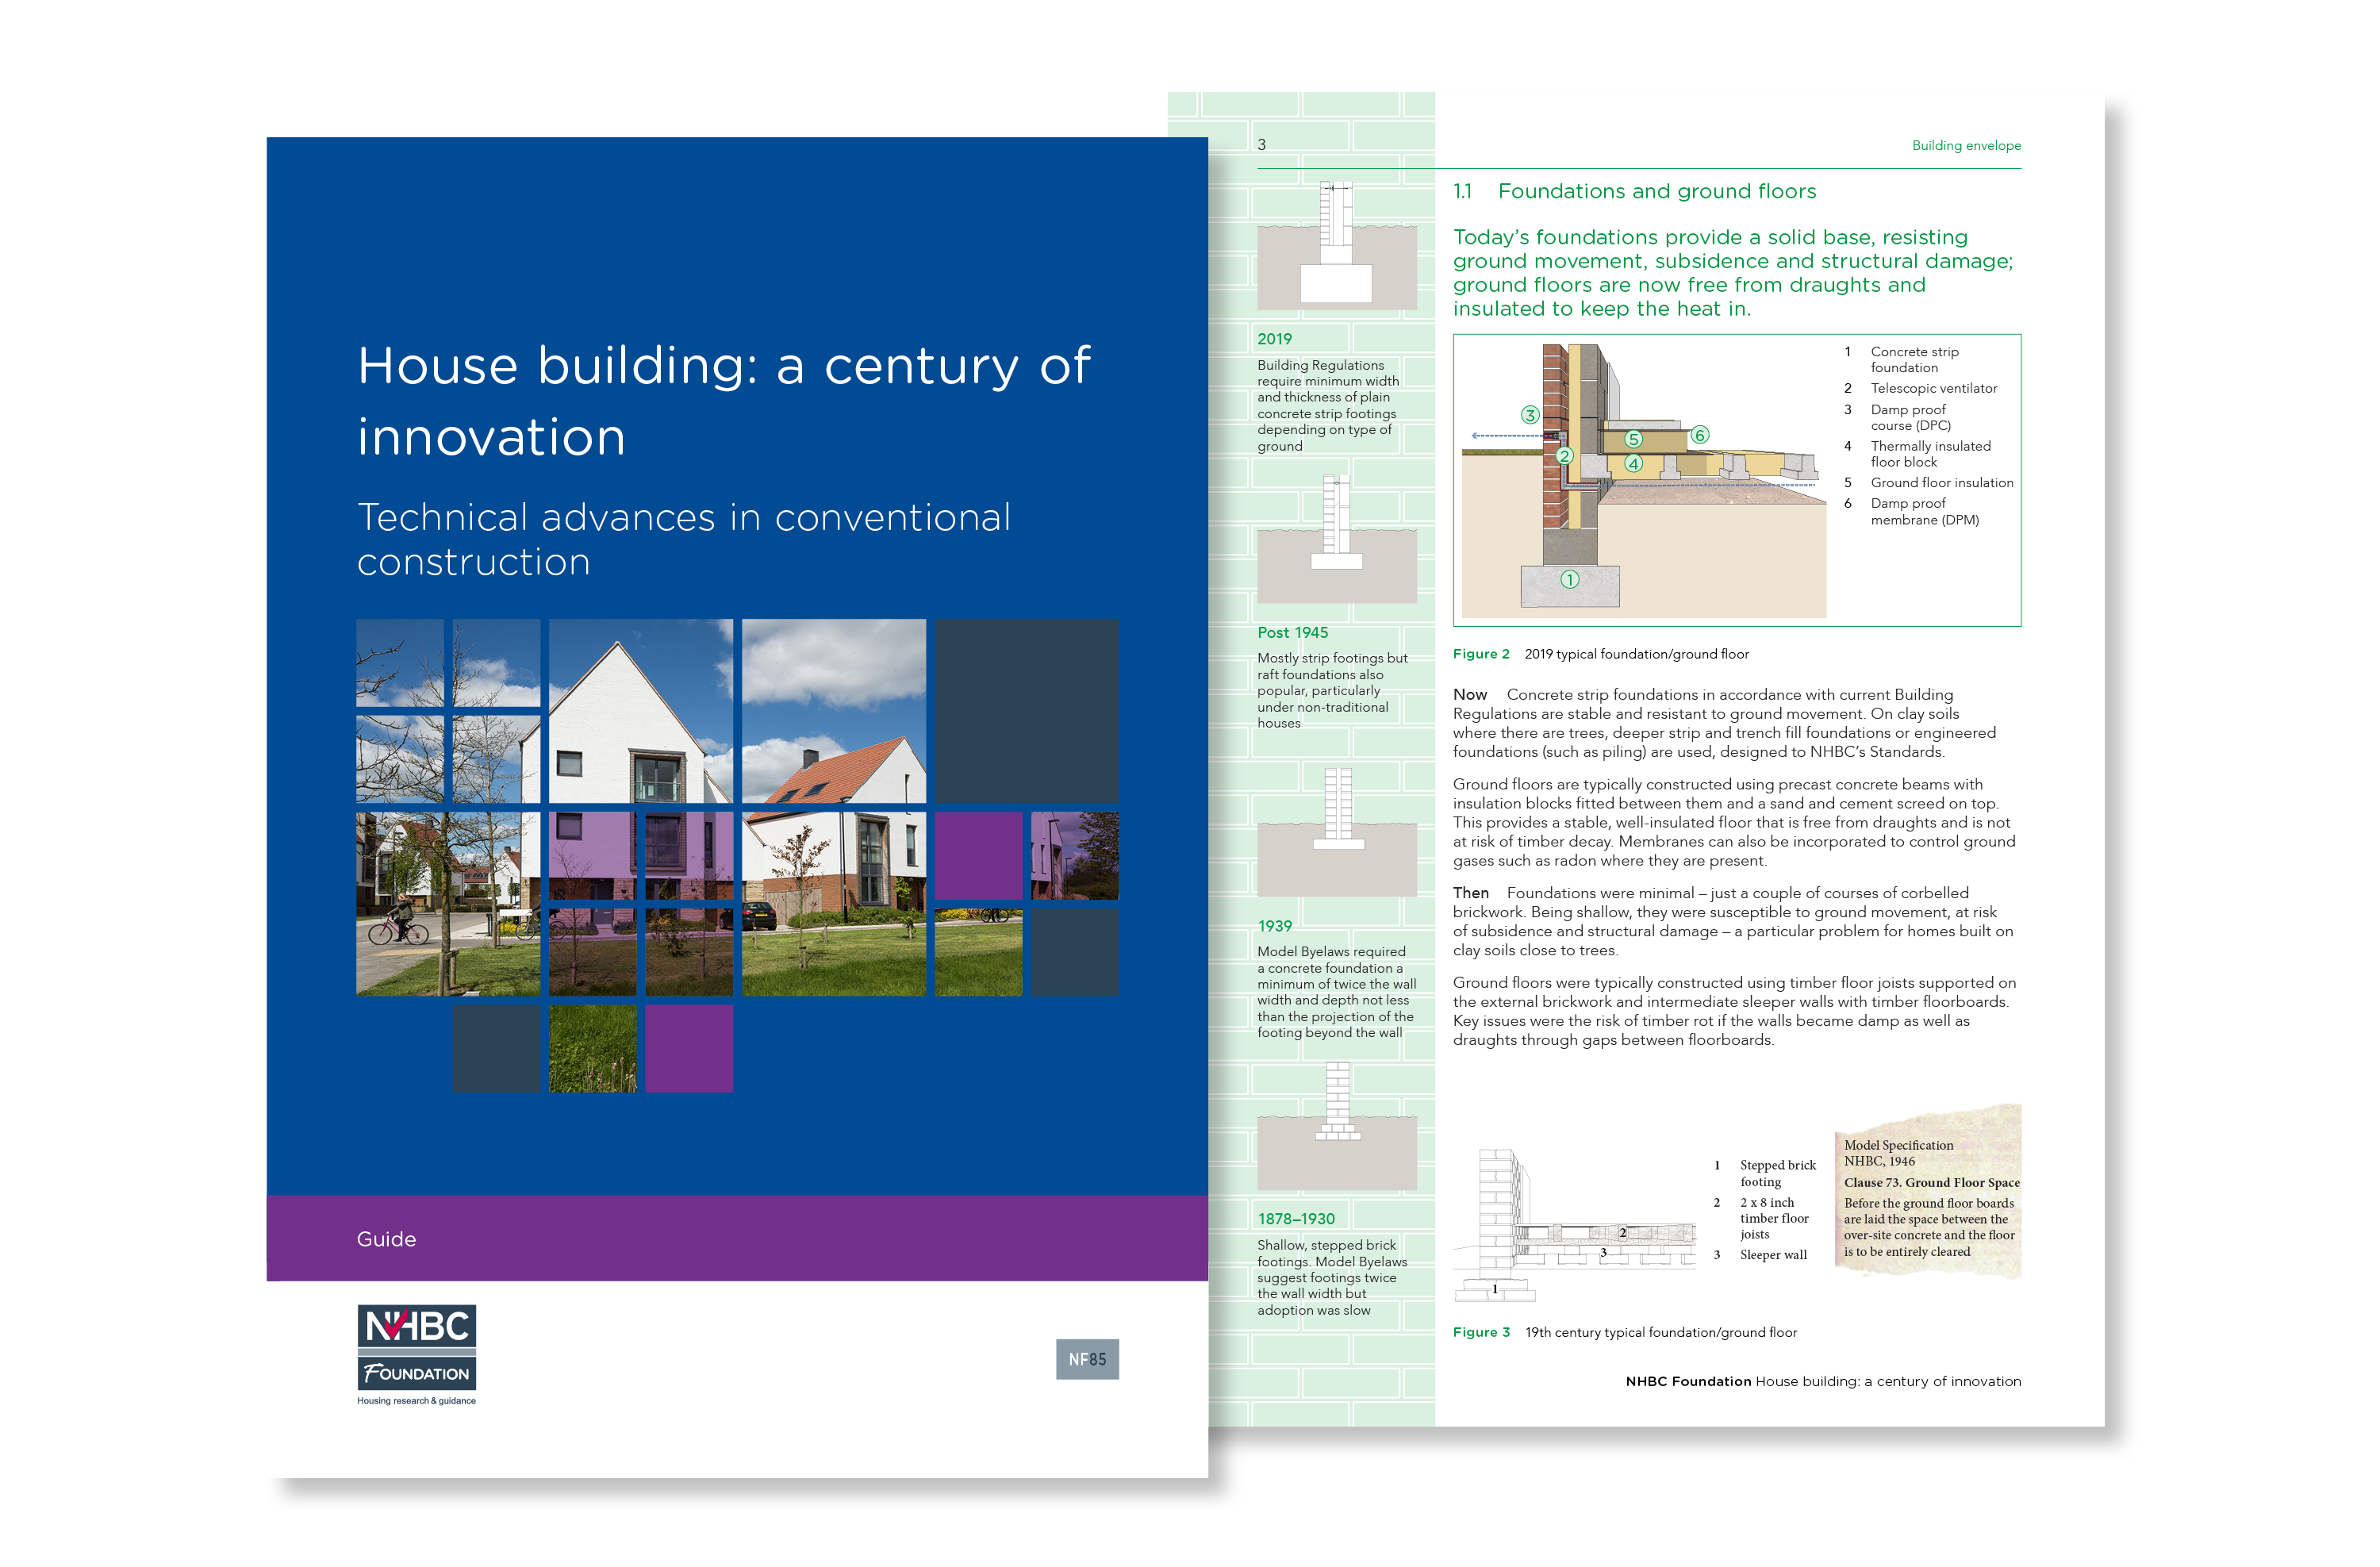 House building: a century of innovation